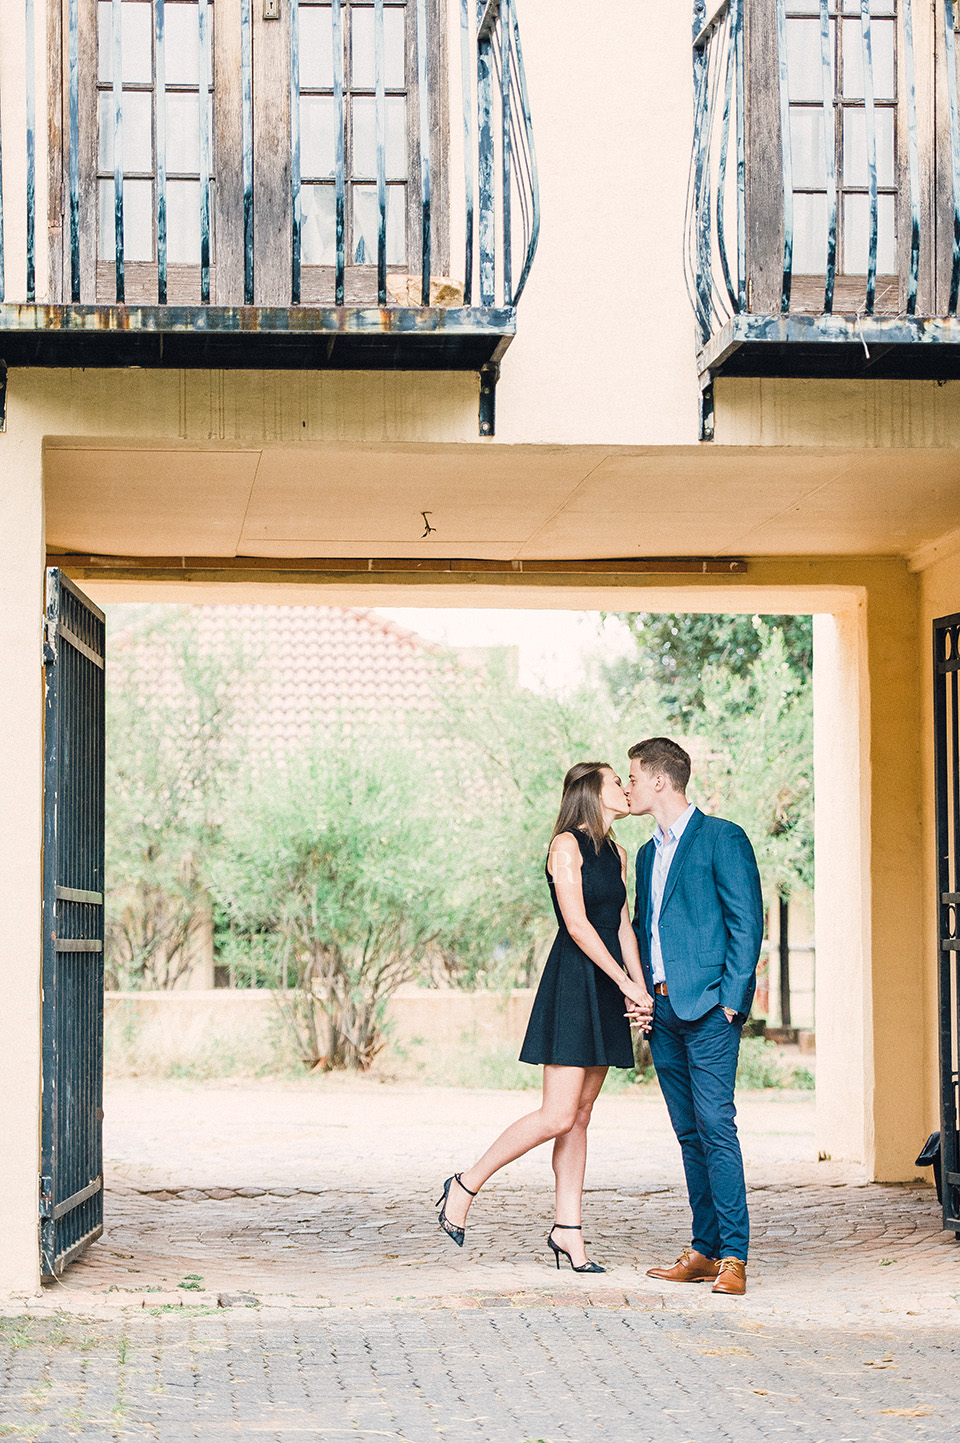 RYAN PARKER_WEDDING PHOTOGRAPHER_COUPLE SESSION_SOUTH AFRICA_JOHANNESBURG_D&M-0584.jpg